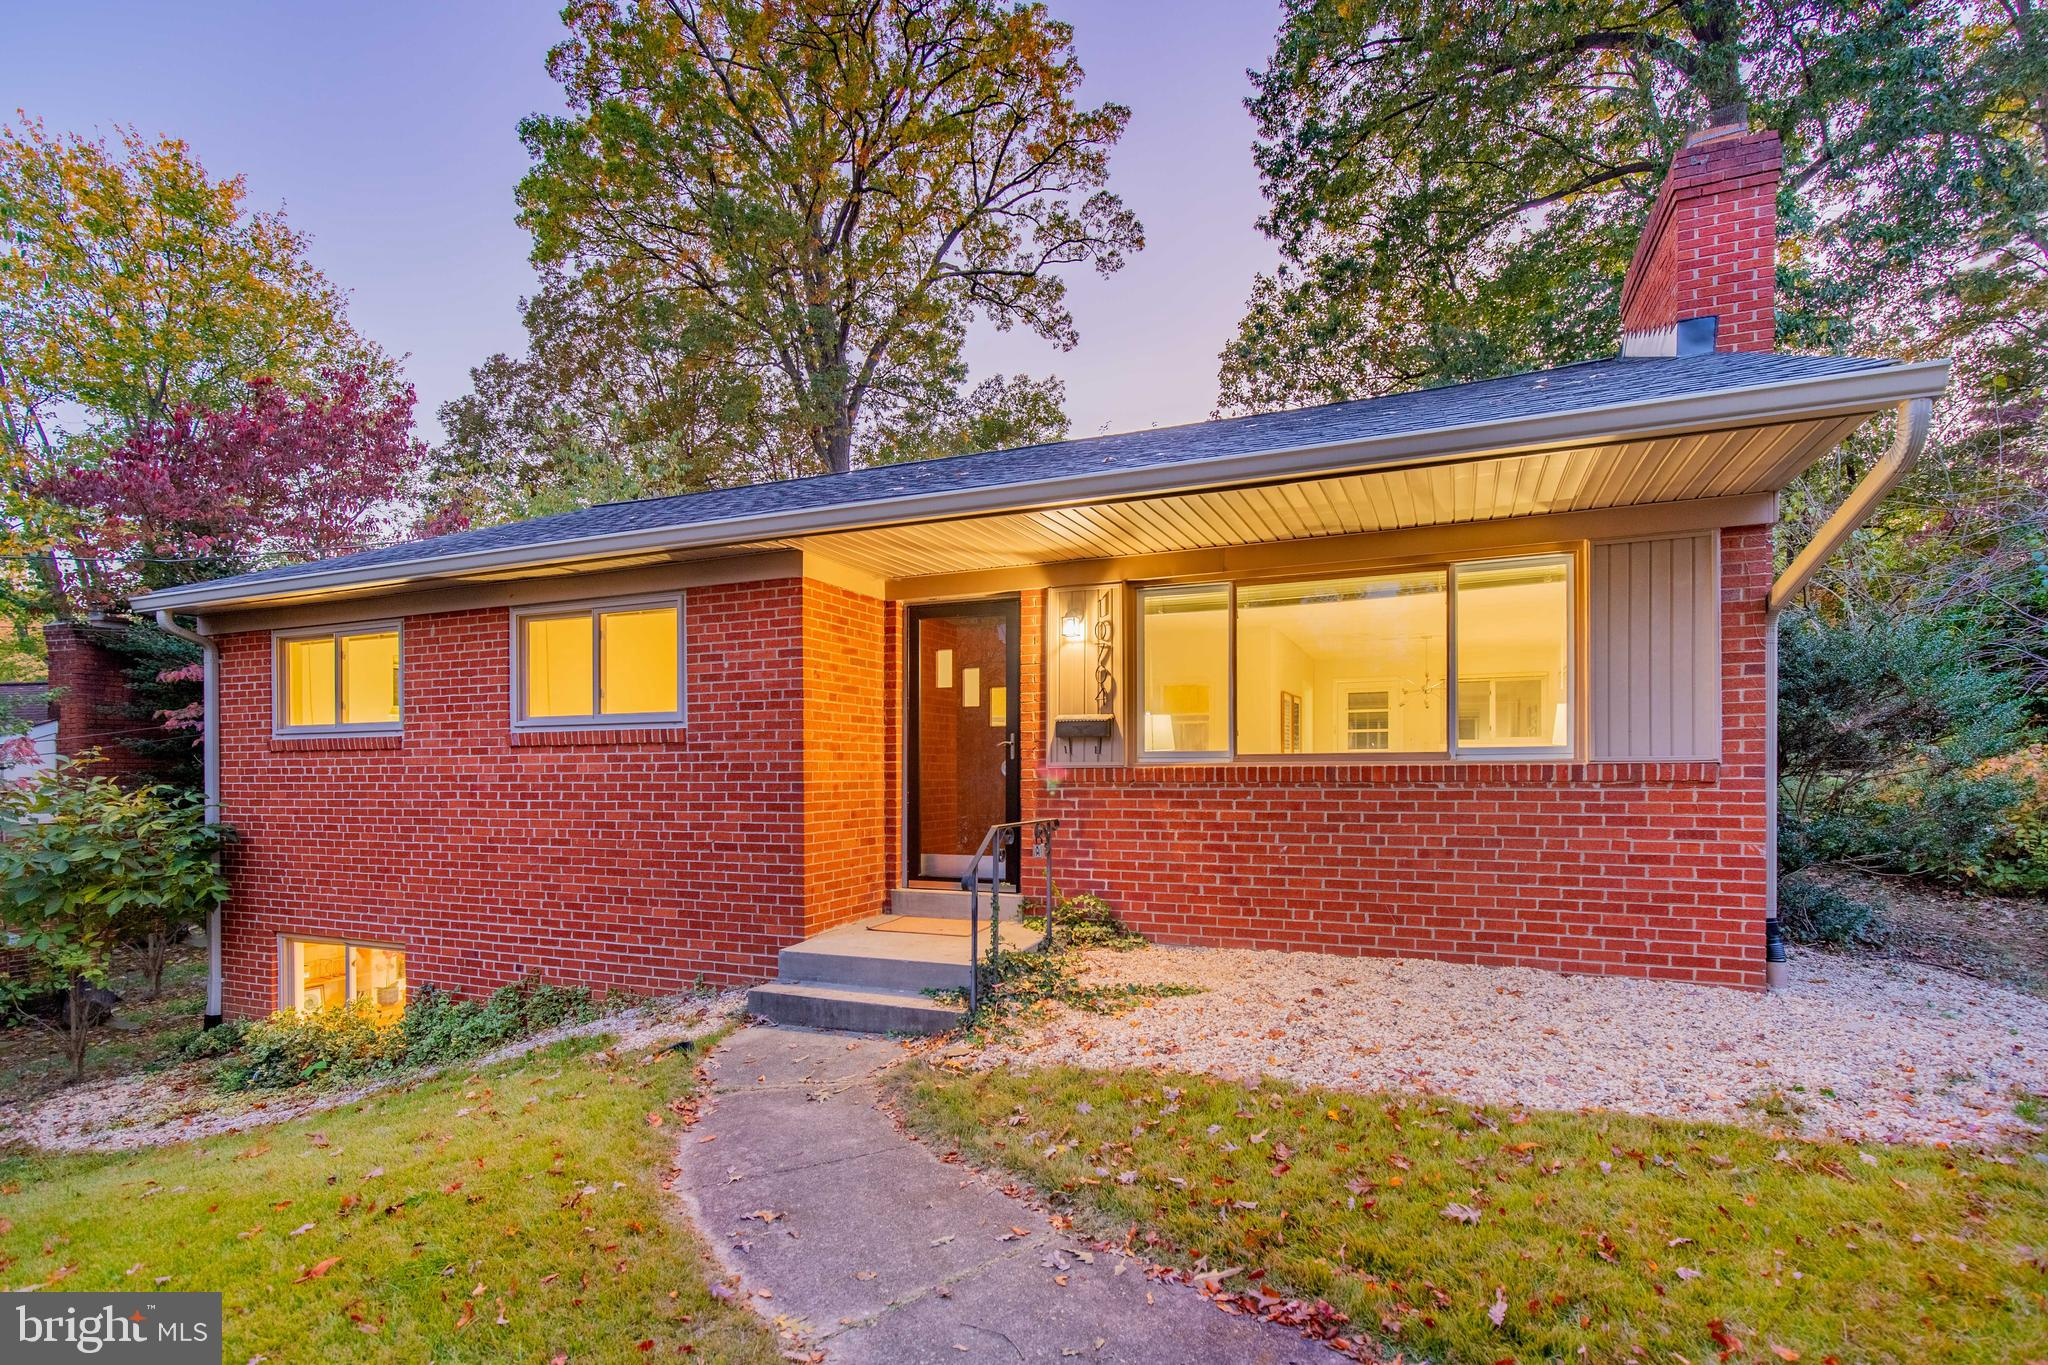 10704 LOMBARDY ROAD, SILVER SPRING, MD 20901